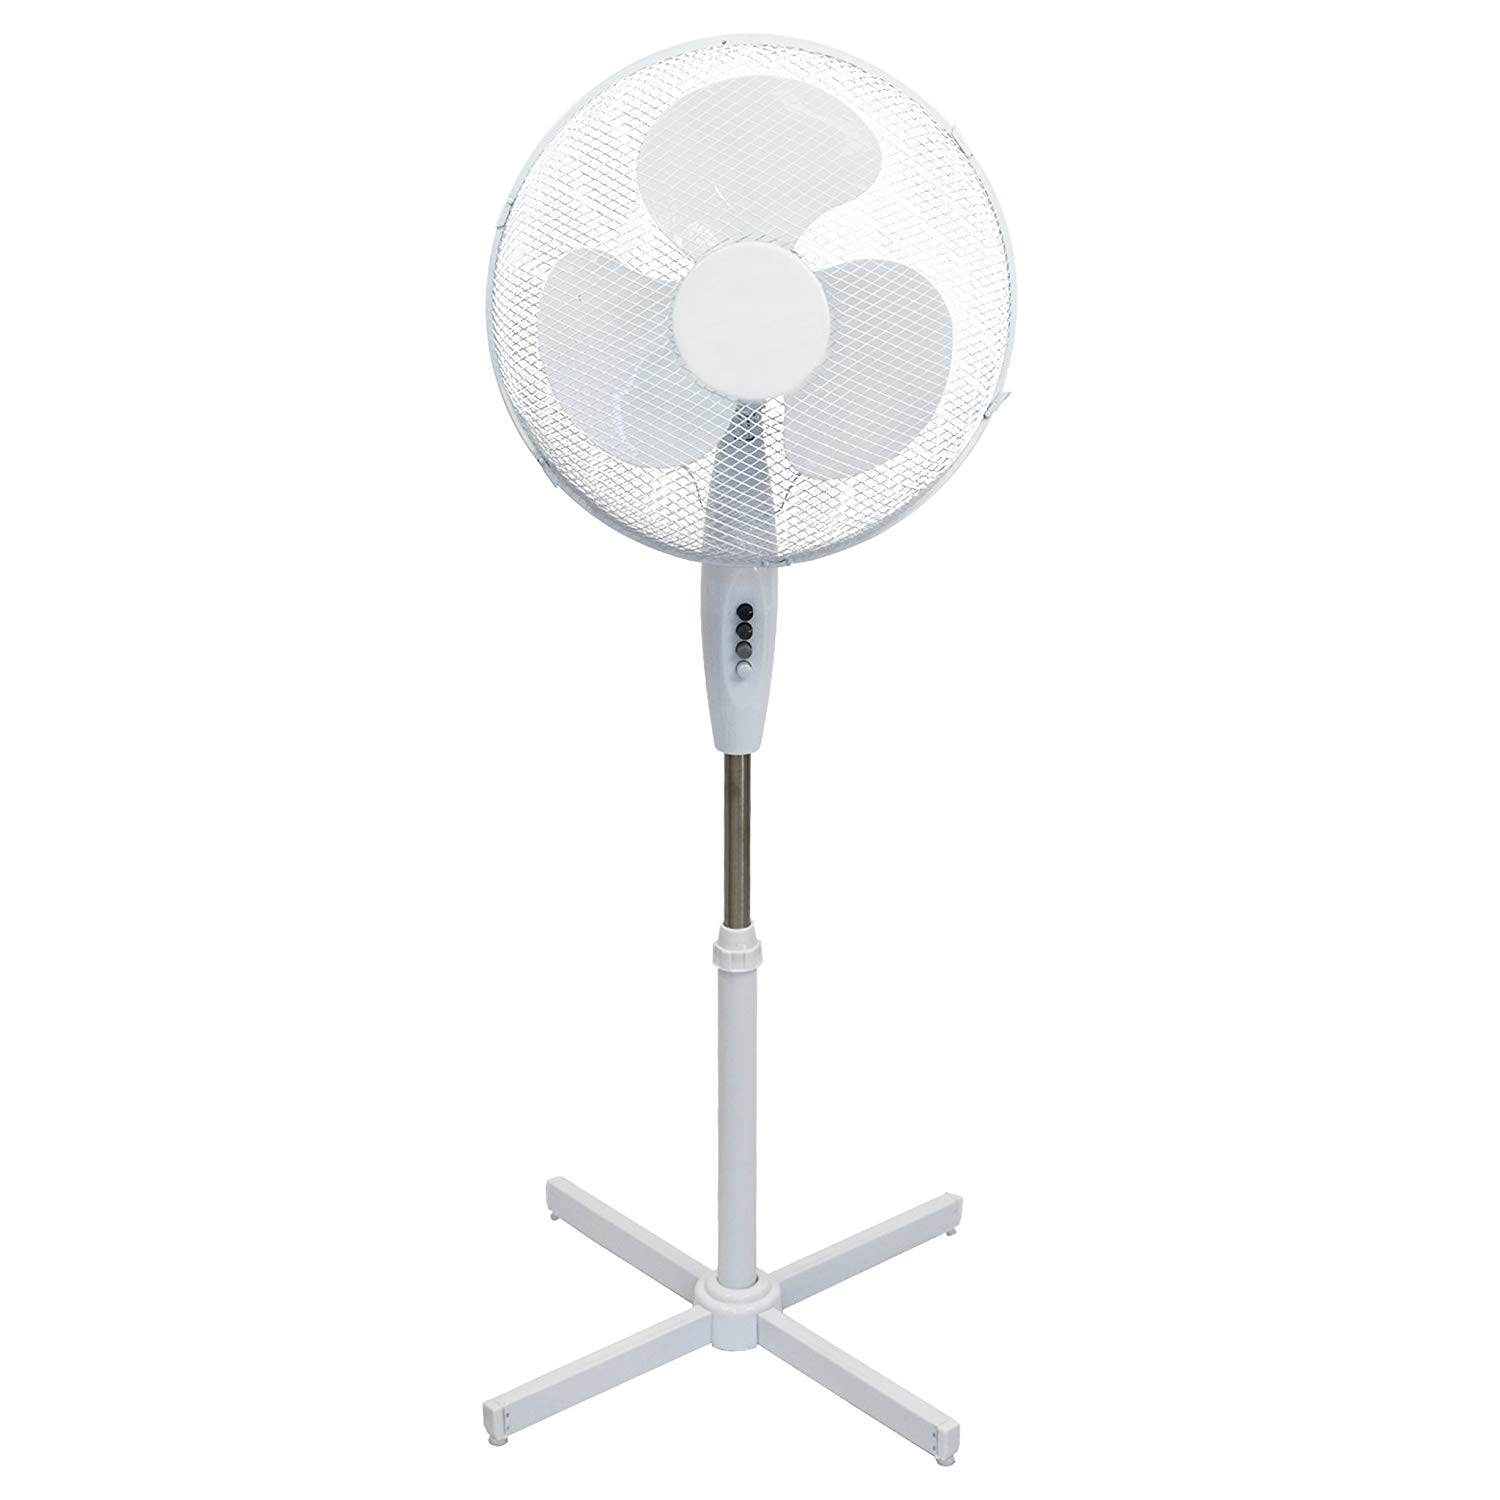 Oscillating Pedestal Electric Cooling Fan